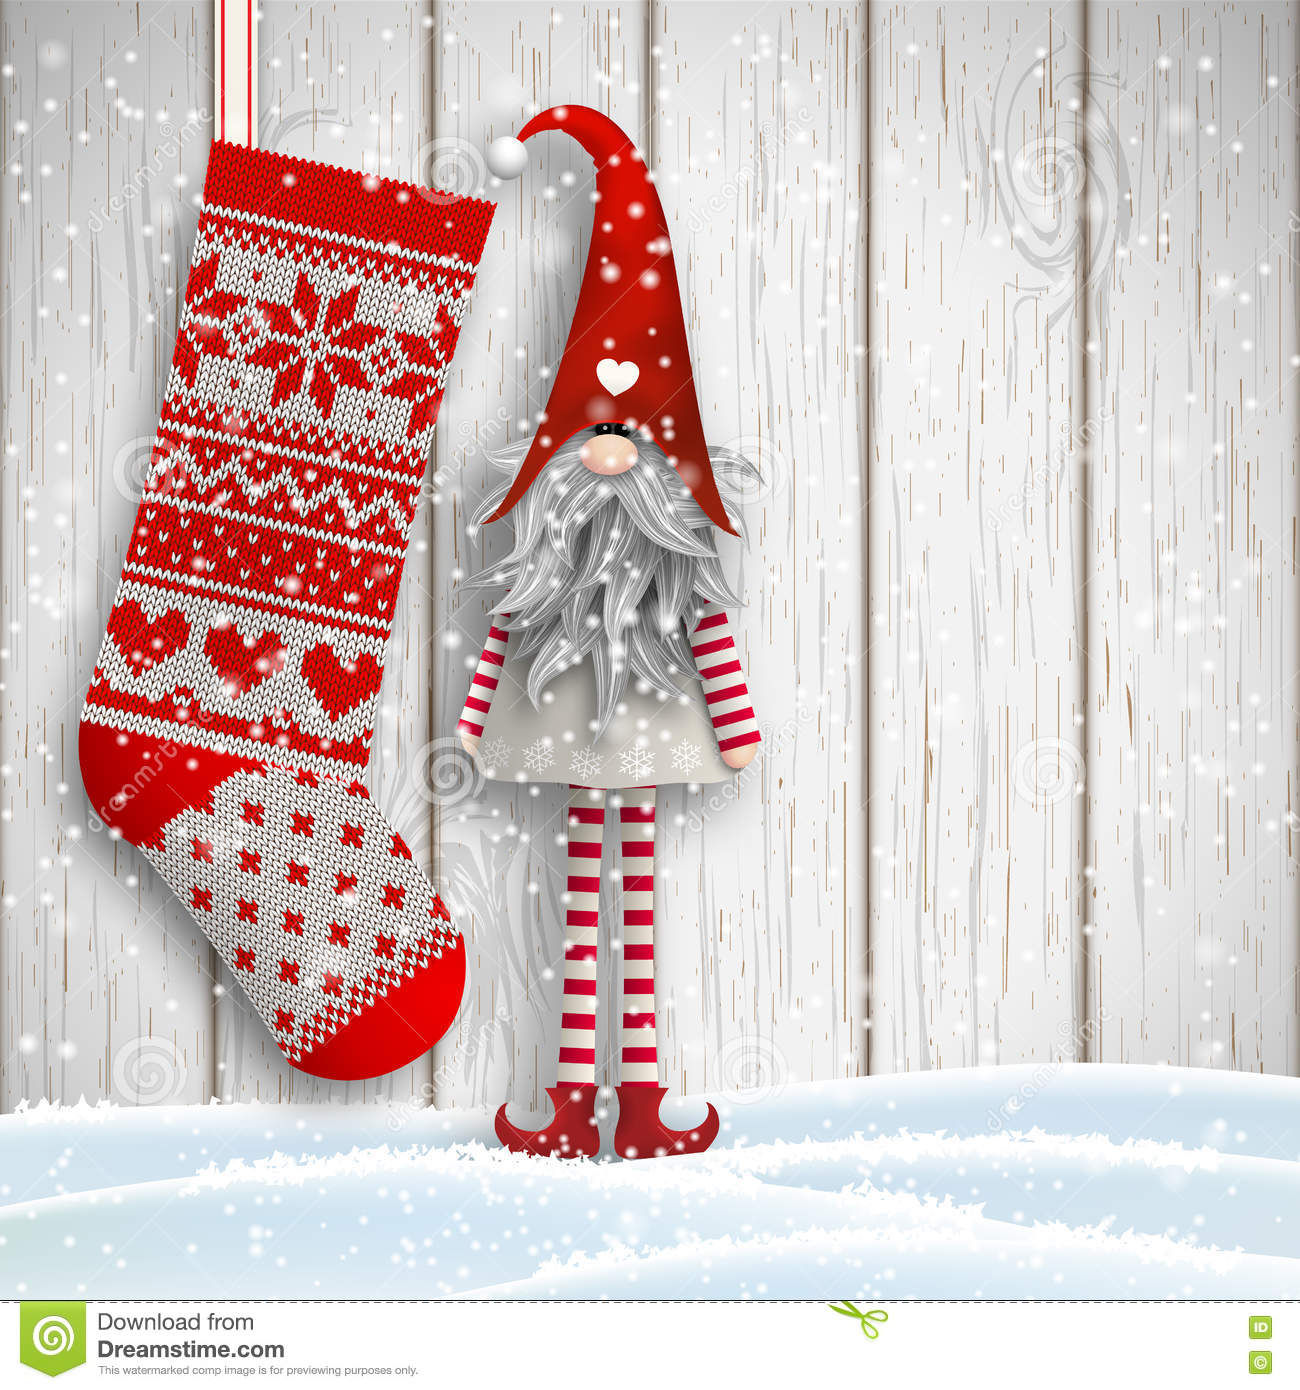 Scandinavian Christmas Traditional Gnome, Tomte, With Knitted ...